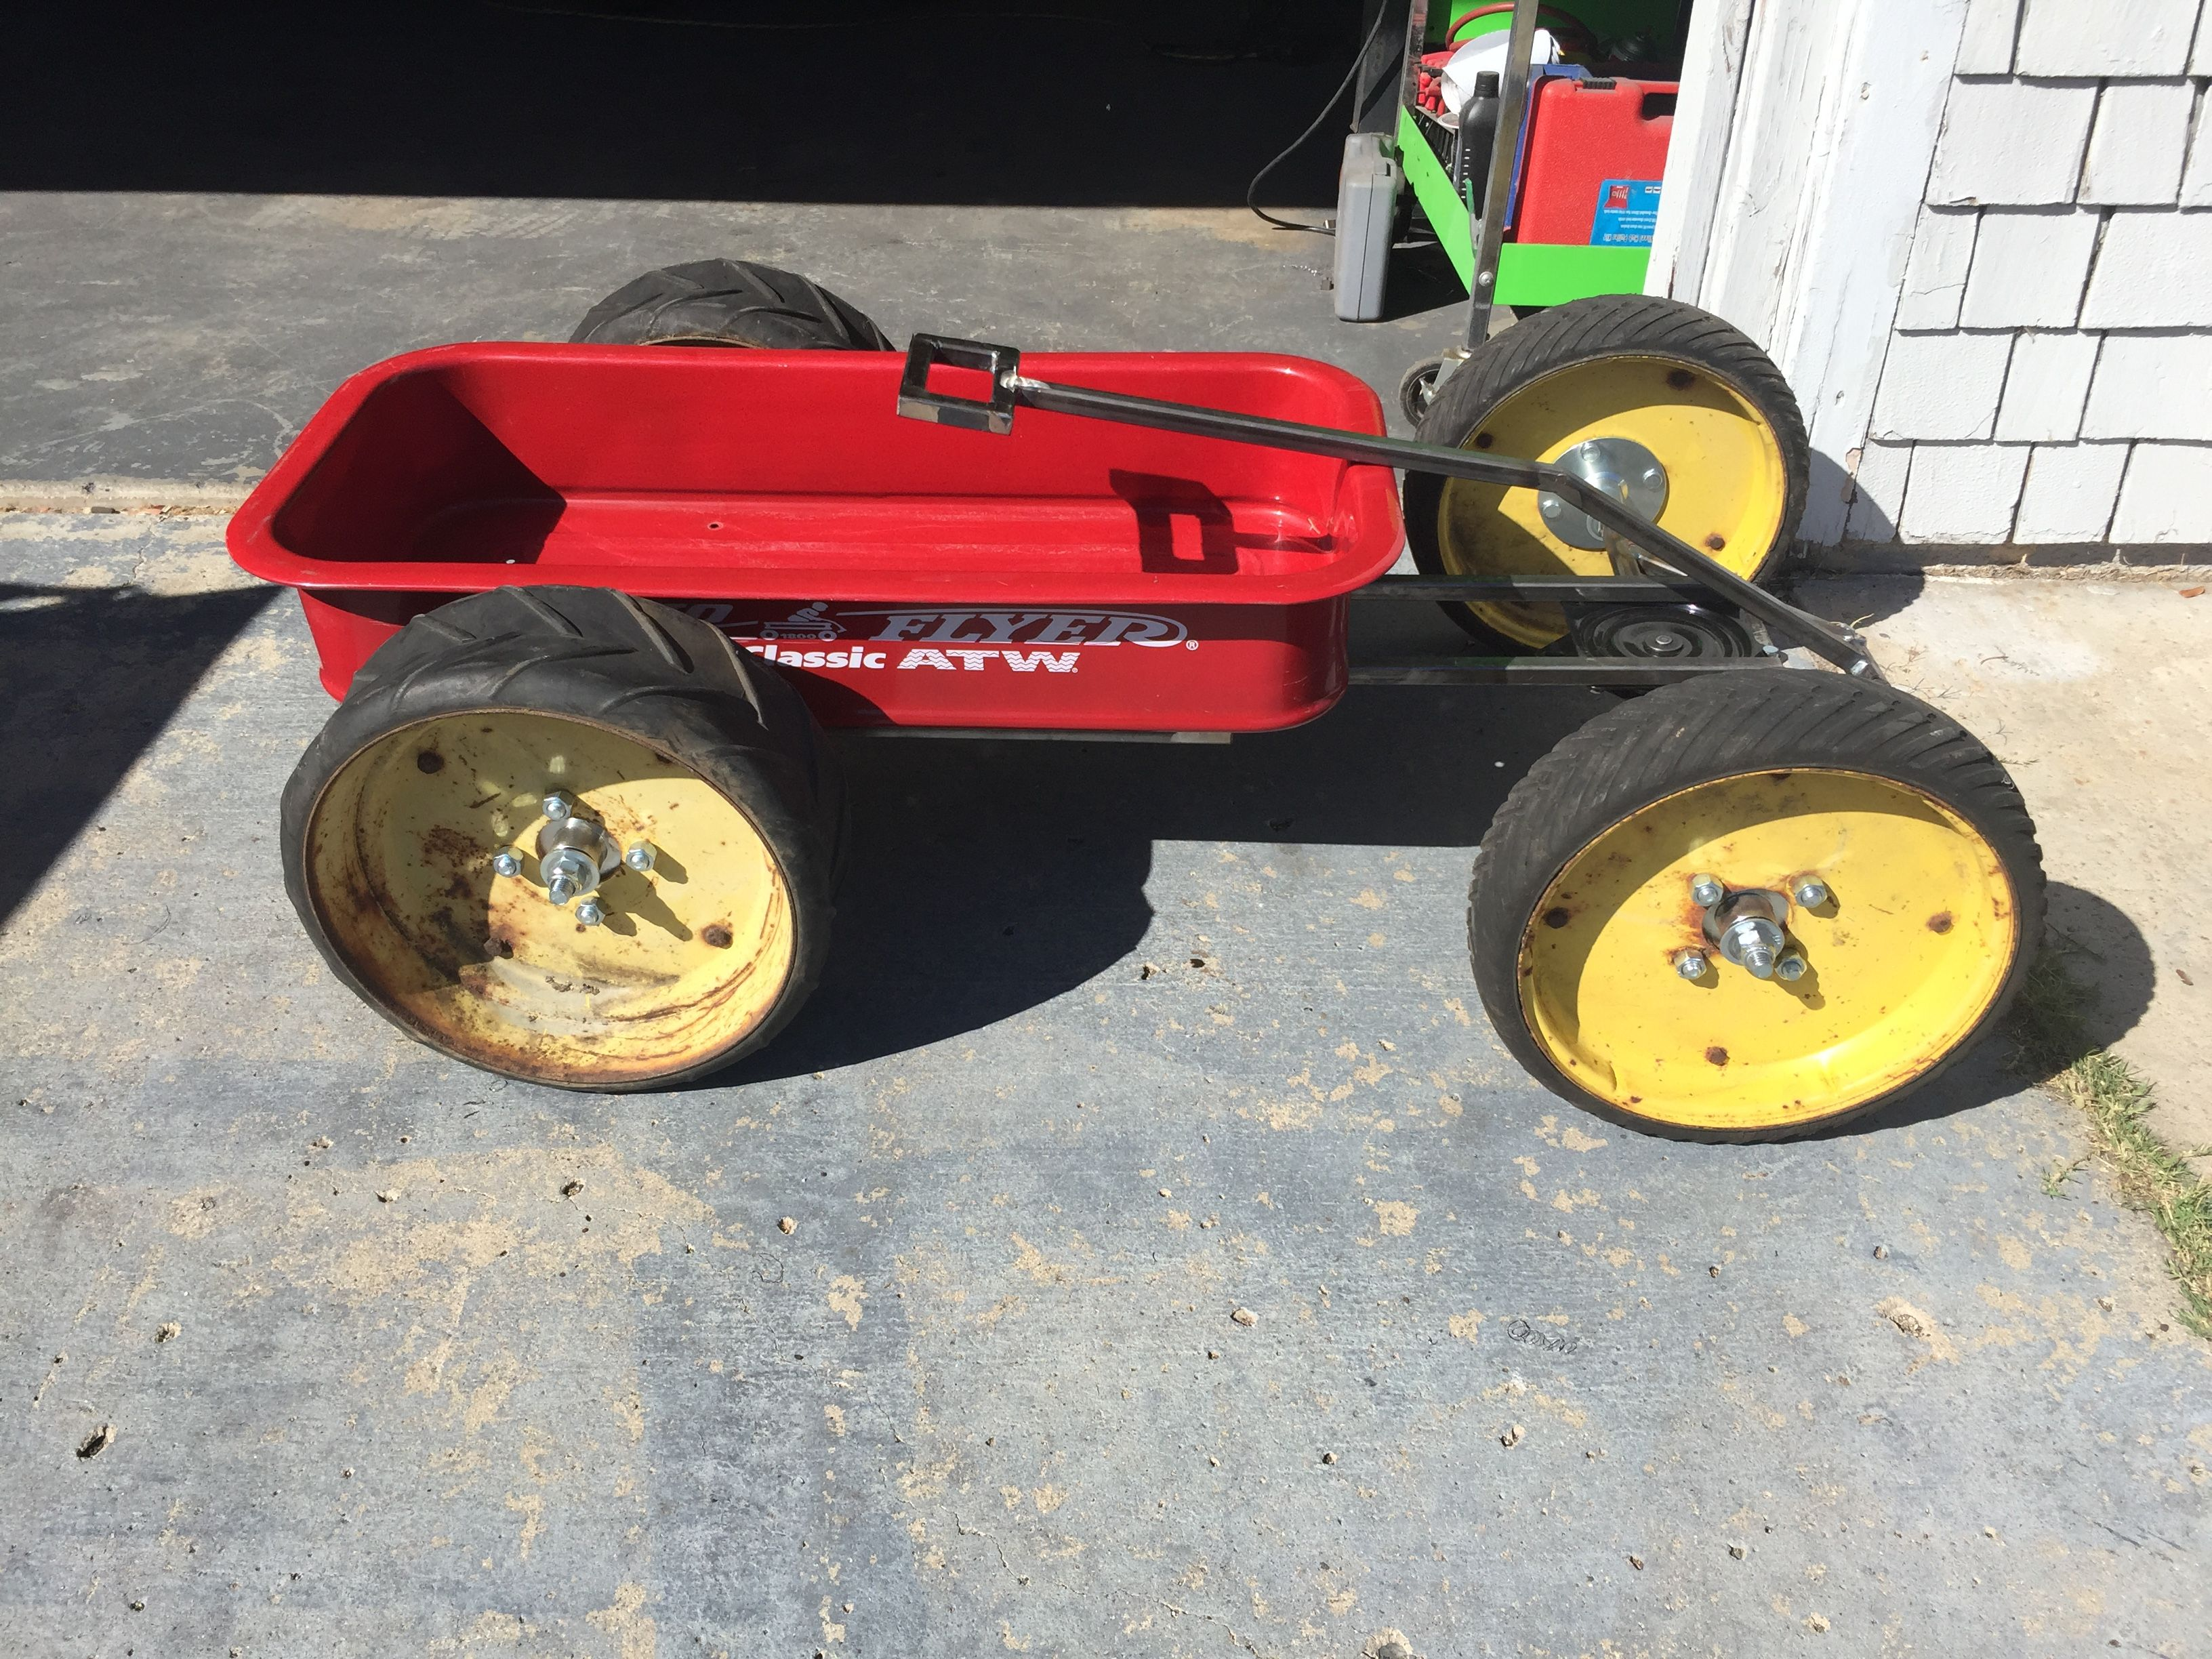 Upgrade The Wheels And Axles On The Radio Flyer Atw With Images